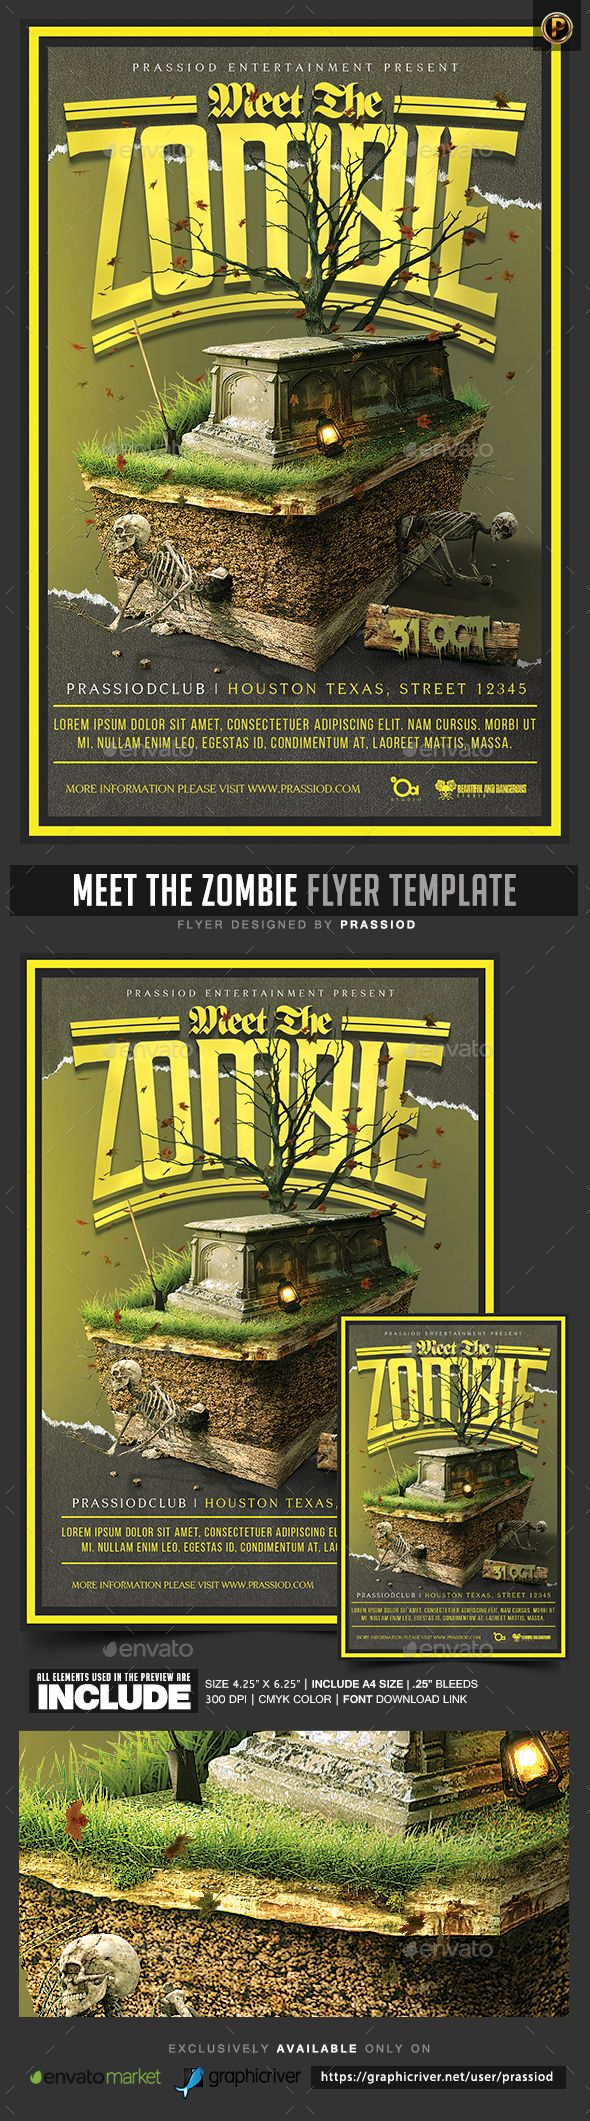 Meet The Zombie Flyer Template | Event flyers, Flyer template and ...